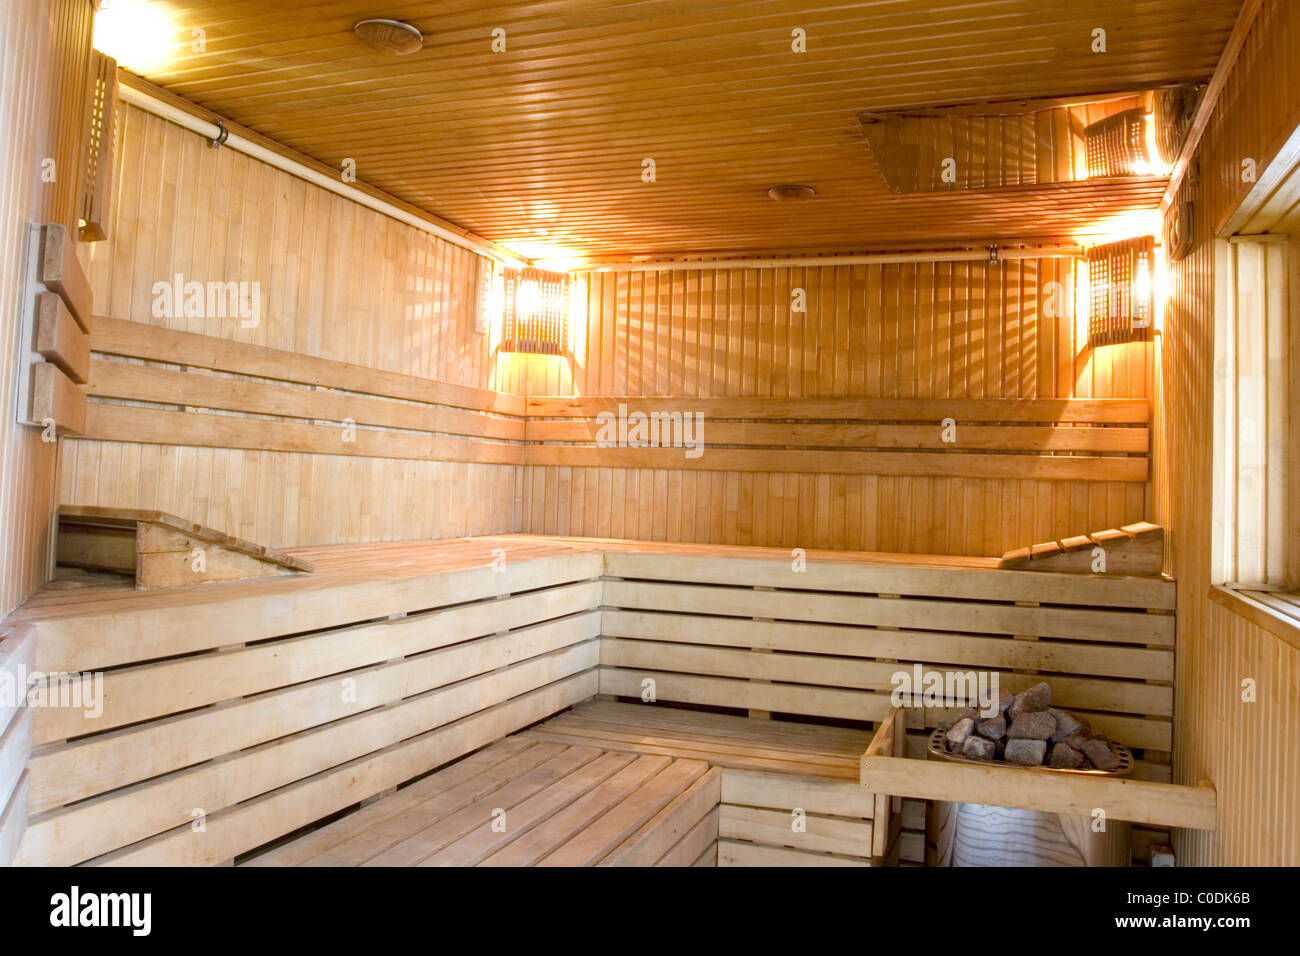 Sauna with furnish from a natural tree and stones for steam creation. - Stock Image